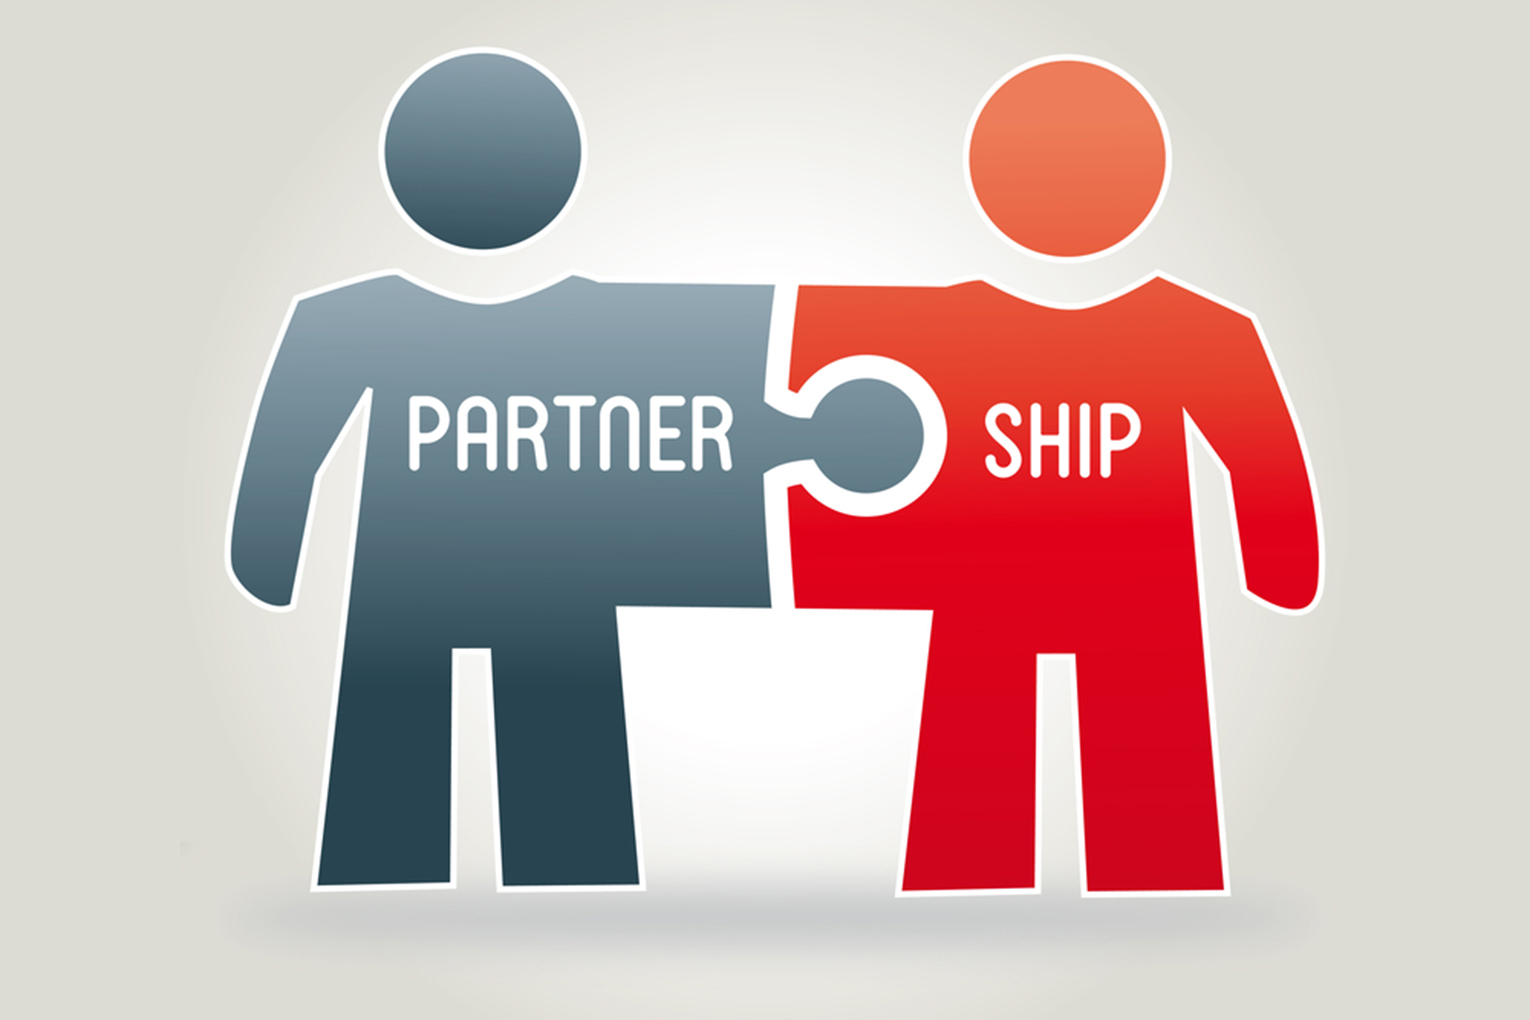 partnership-relationship image